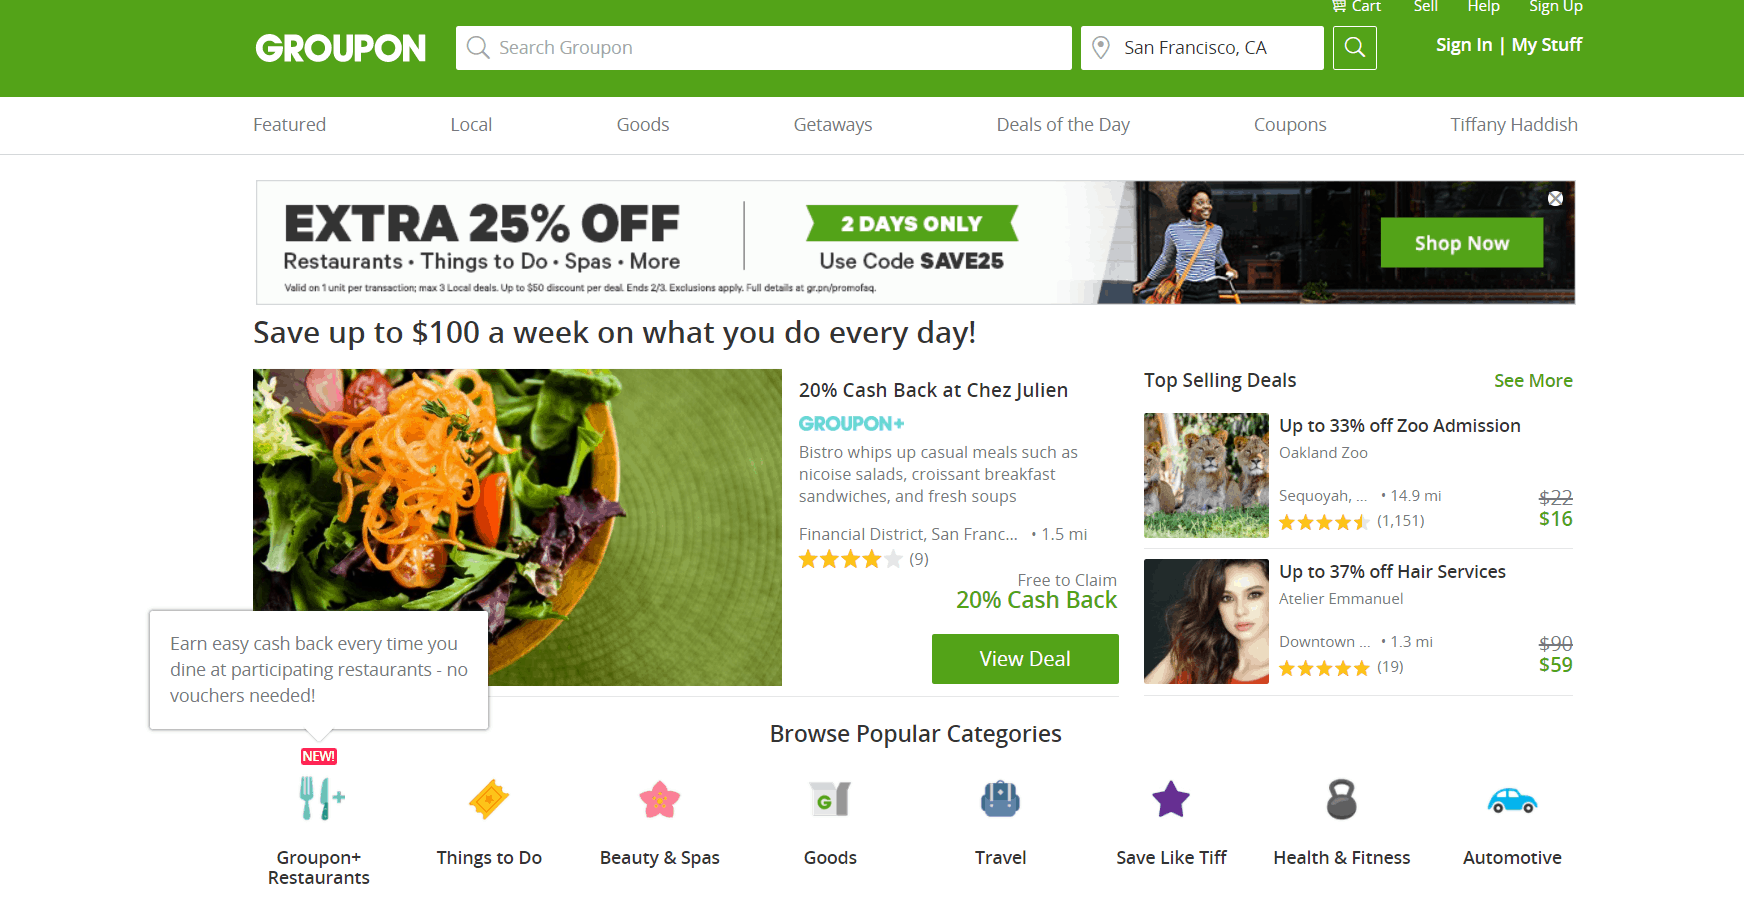 Groupon uses Ruby on Rails